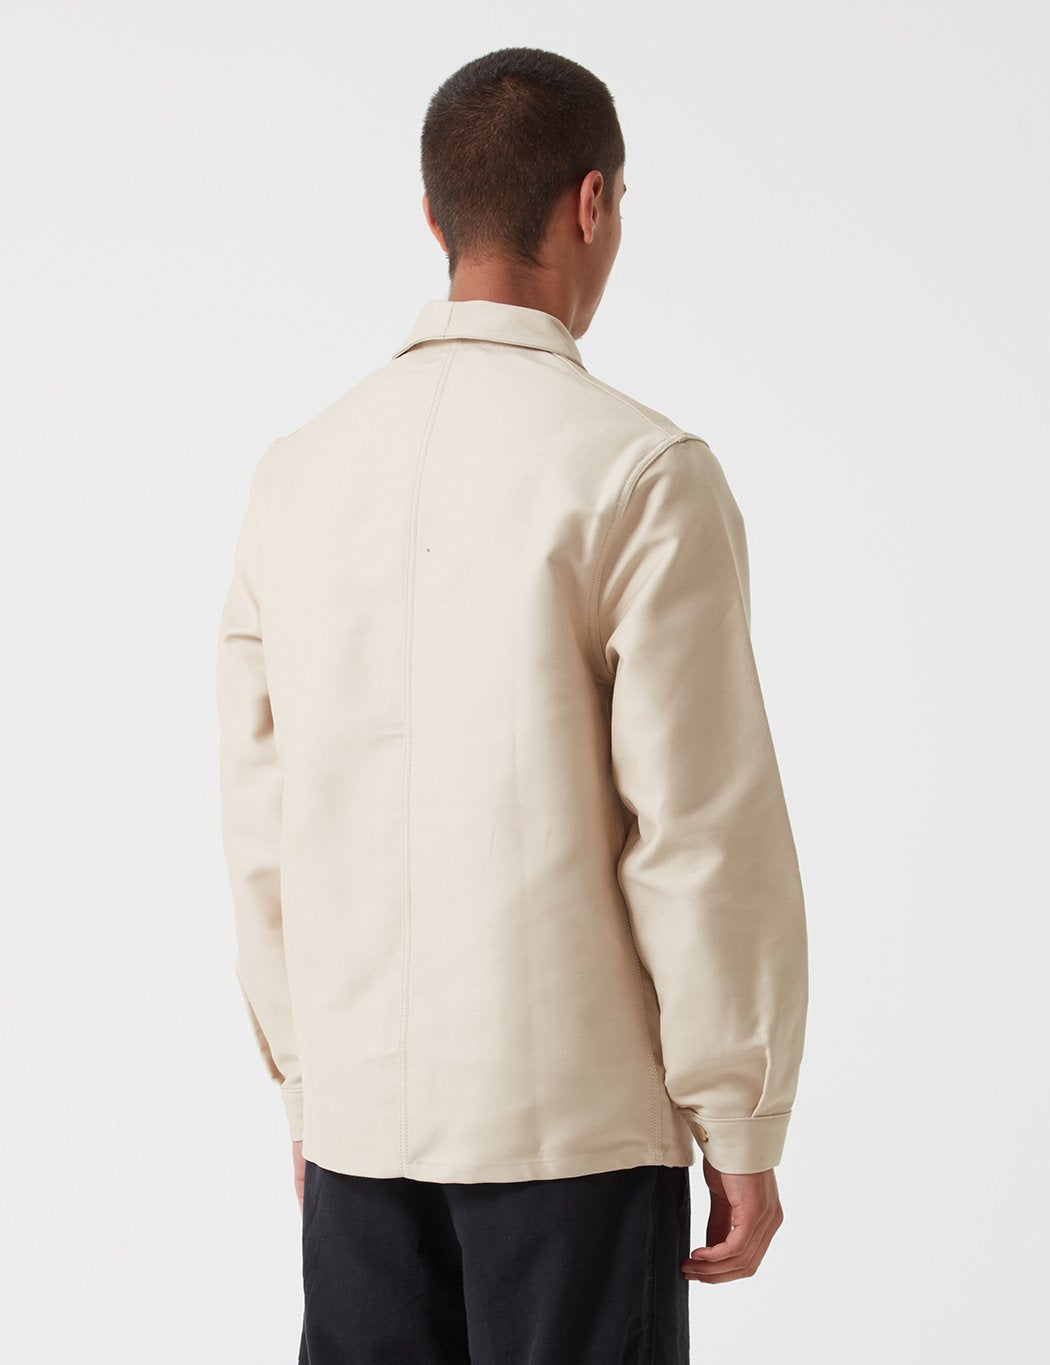 Le Laboureur Moleskin Work Jacket - Ecru